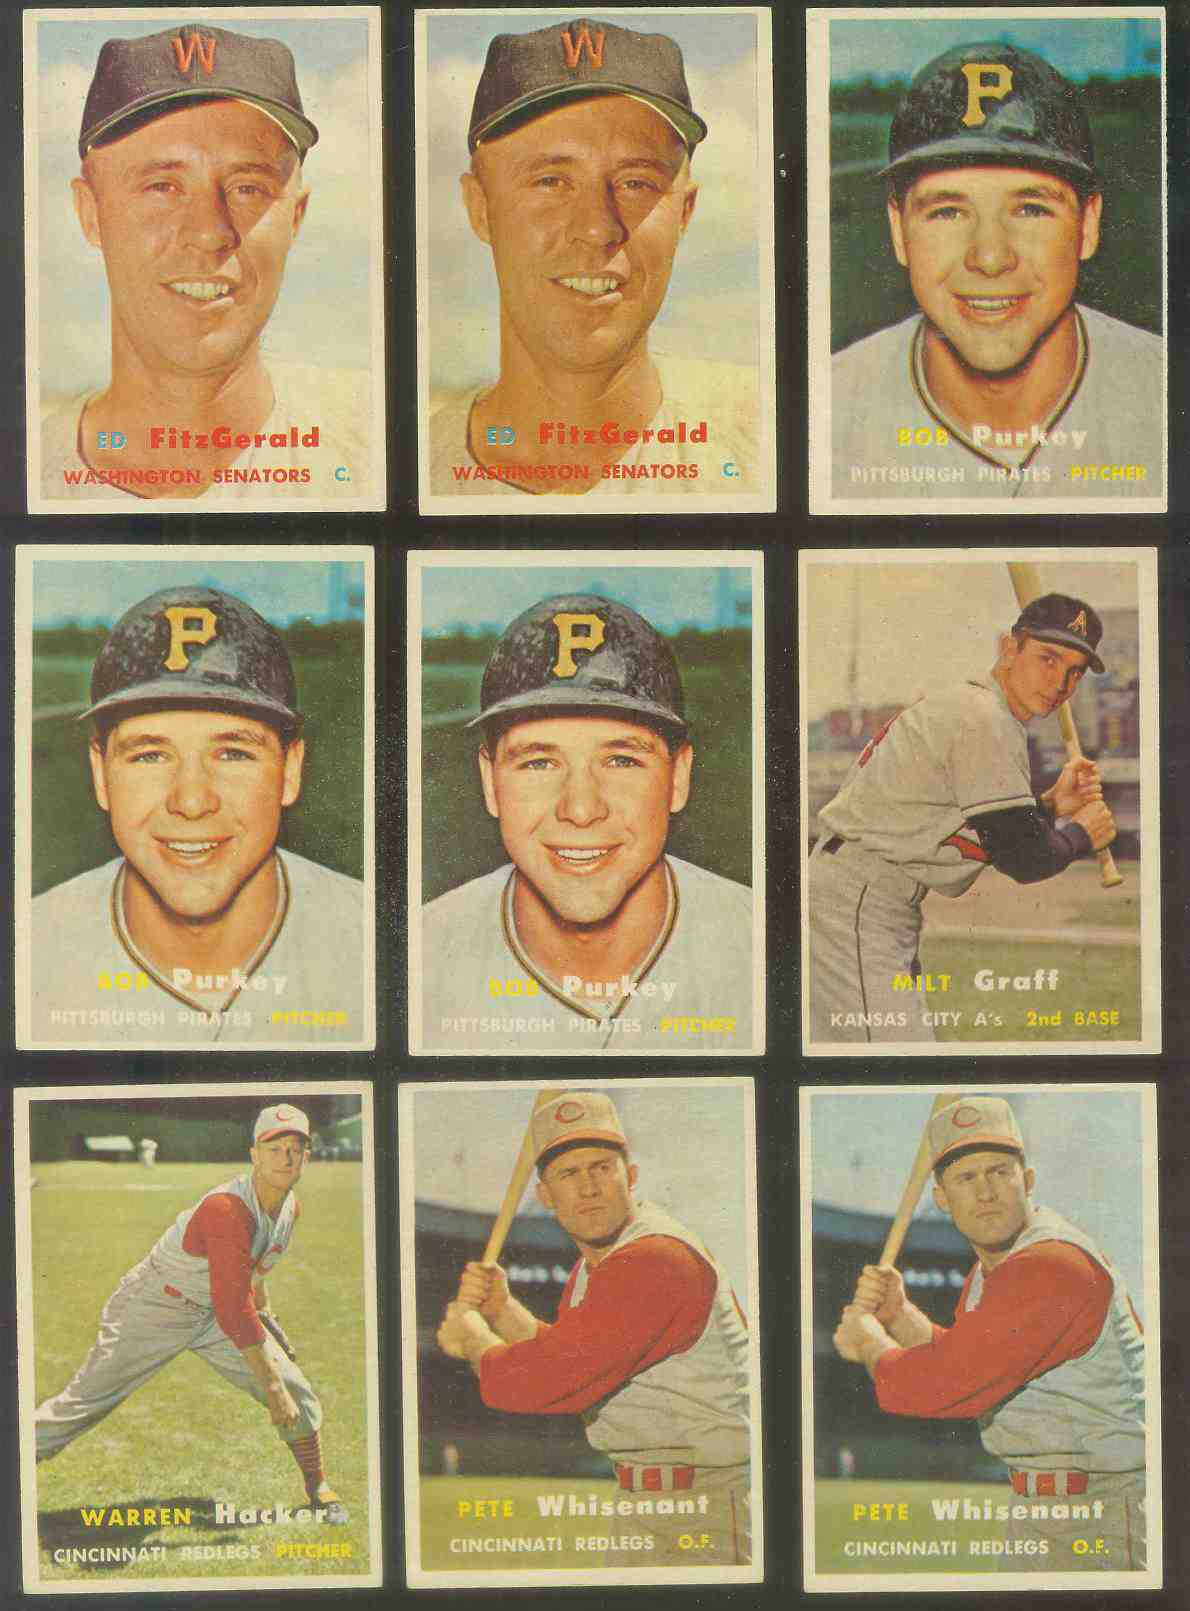 1957 Topps #373 Pete Whisenant (Reds) Baseball cards value